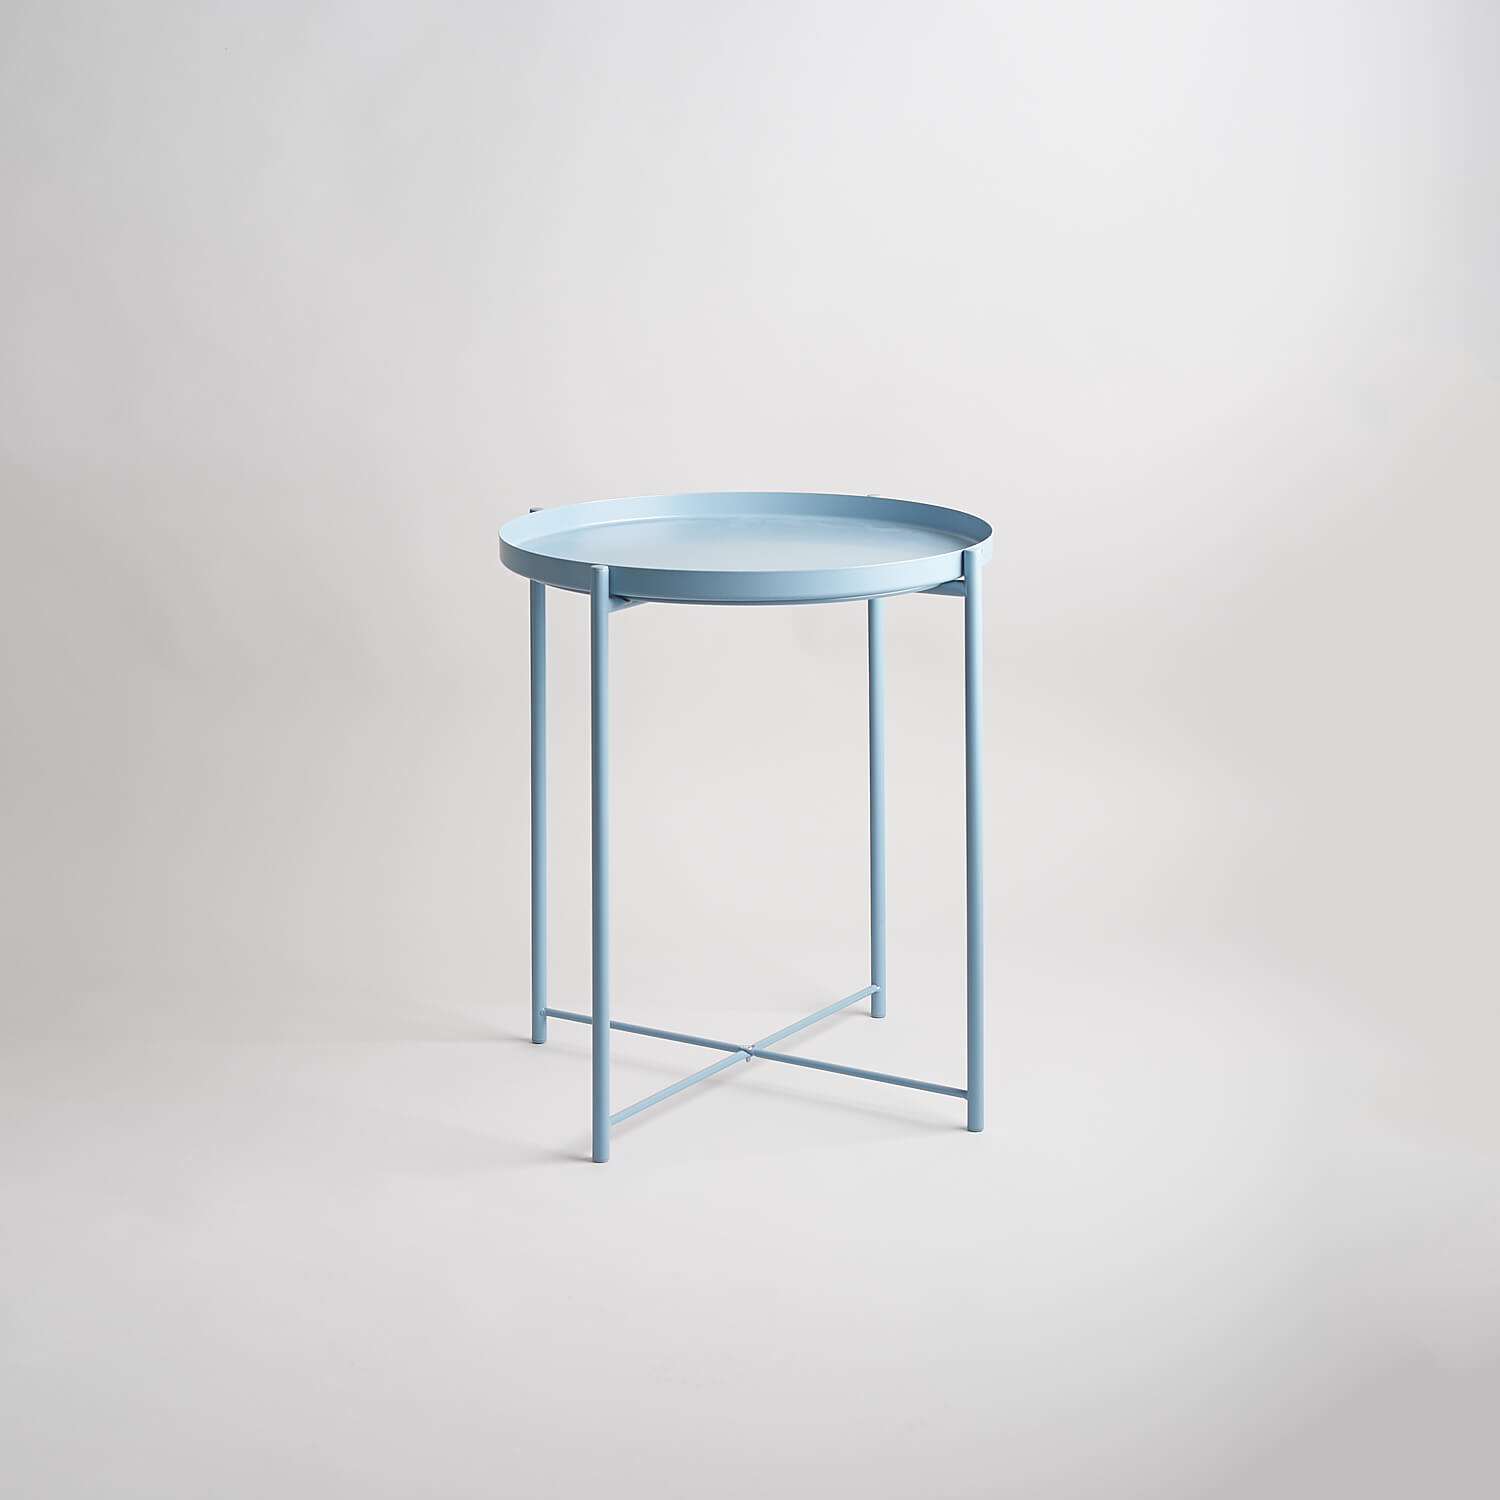 Ikea metal tray table in blue part of the modern set of furniture in stock at the studio